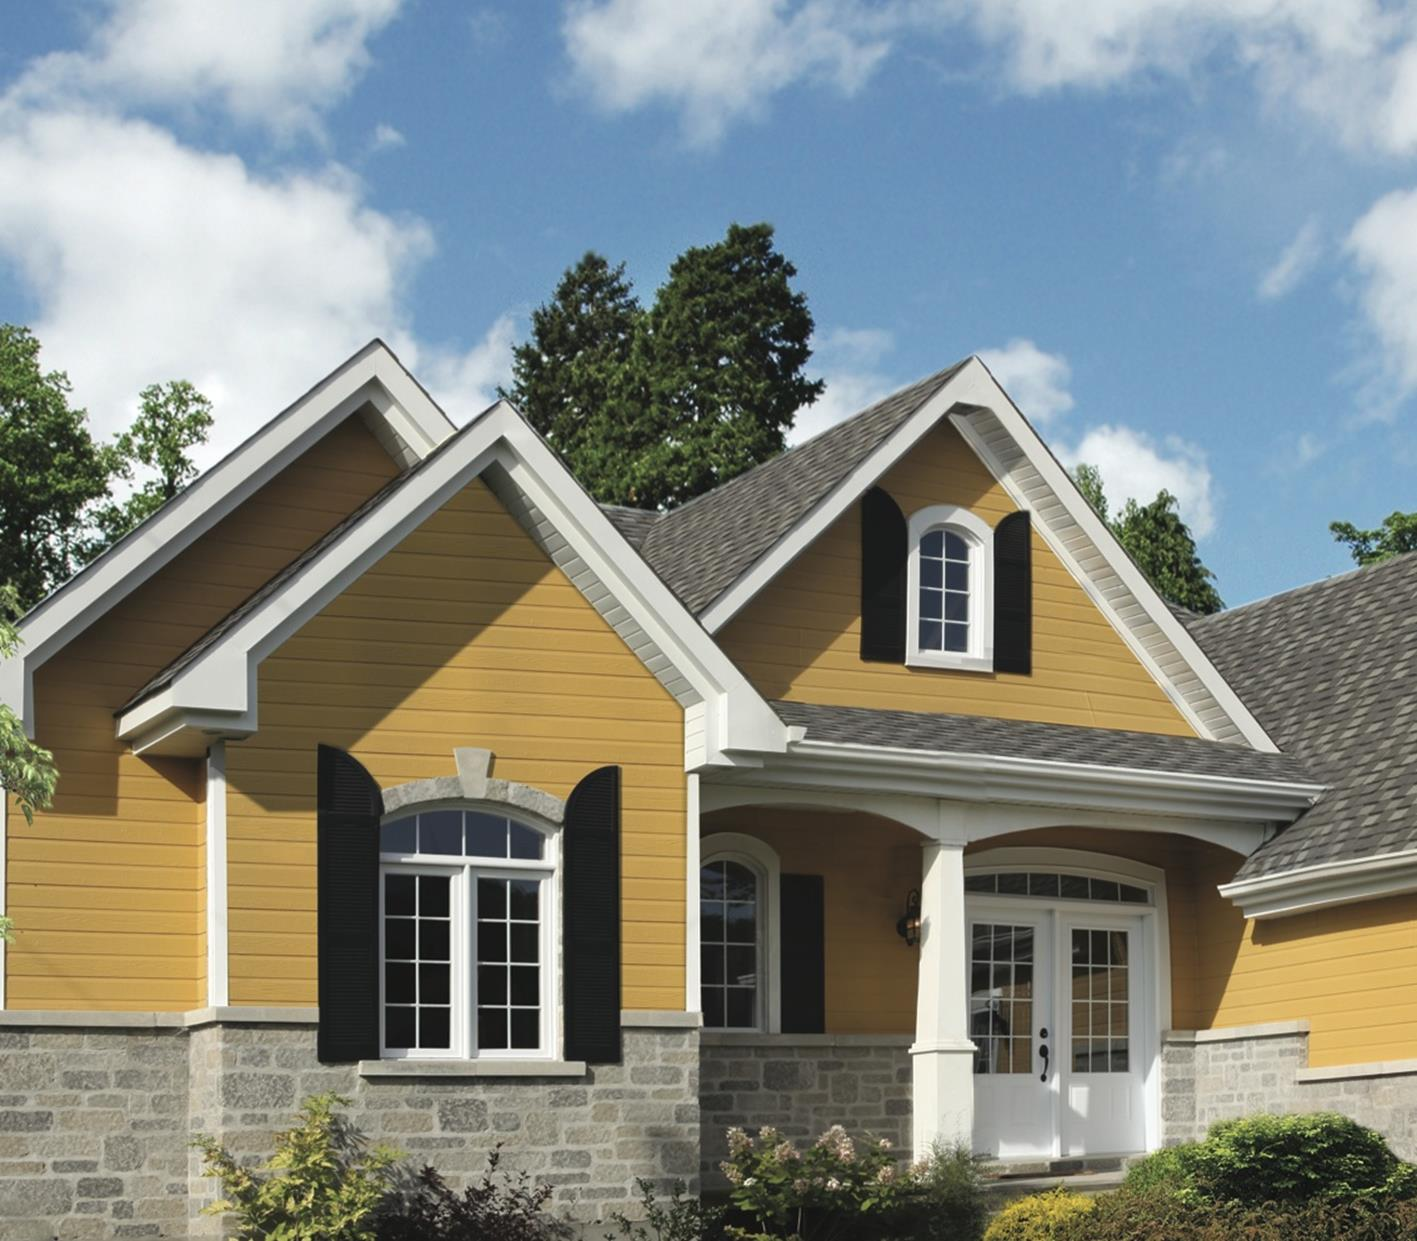 Stunning Exterior House With Brown Roof Colors 20